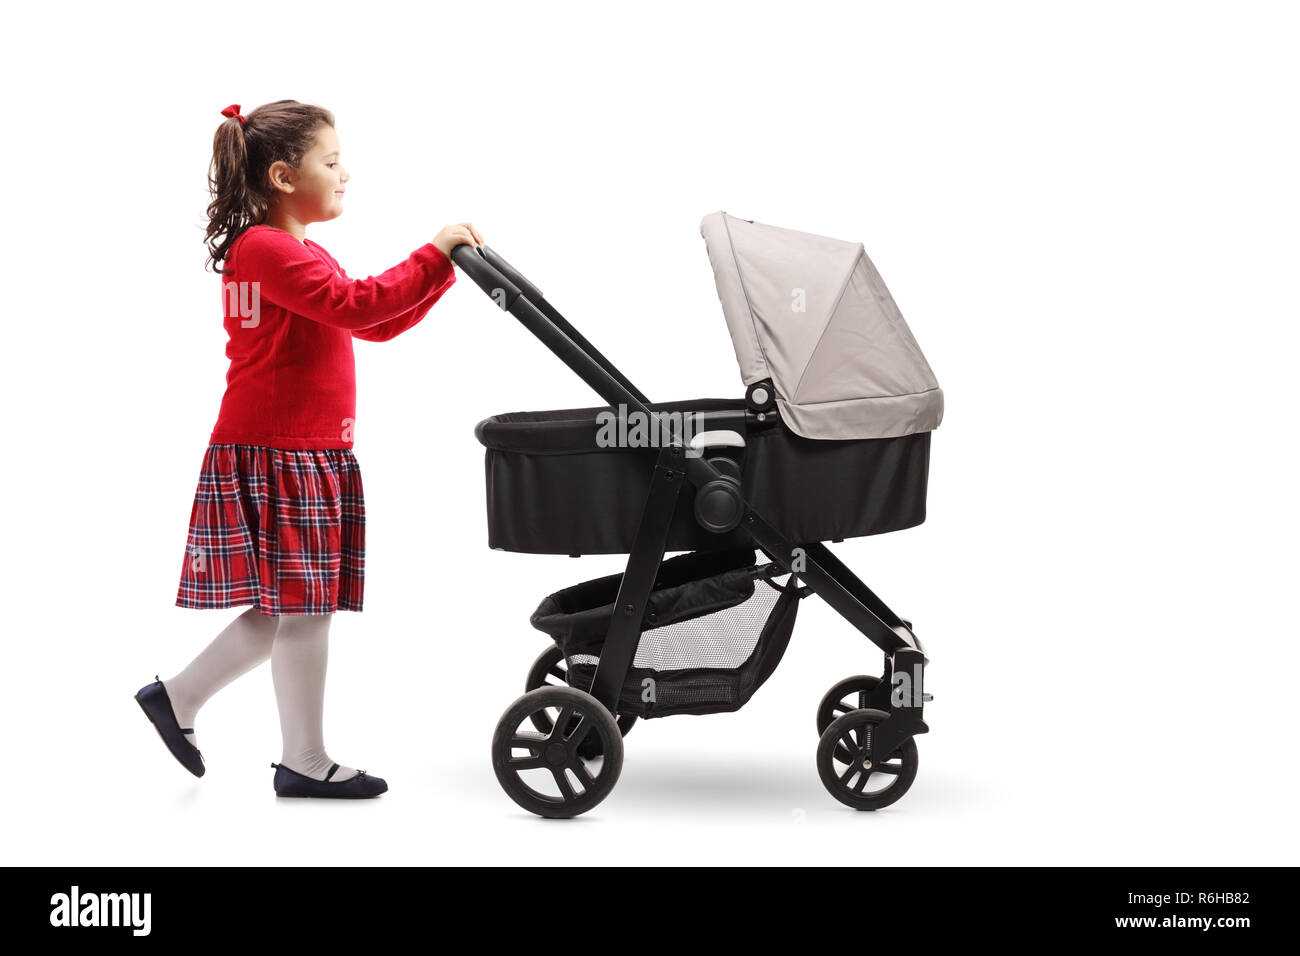 aba8bb330a40 Child Pushing Trolley Cut Out Stock Images   Pictures - Alamy